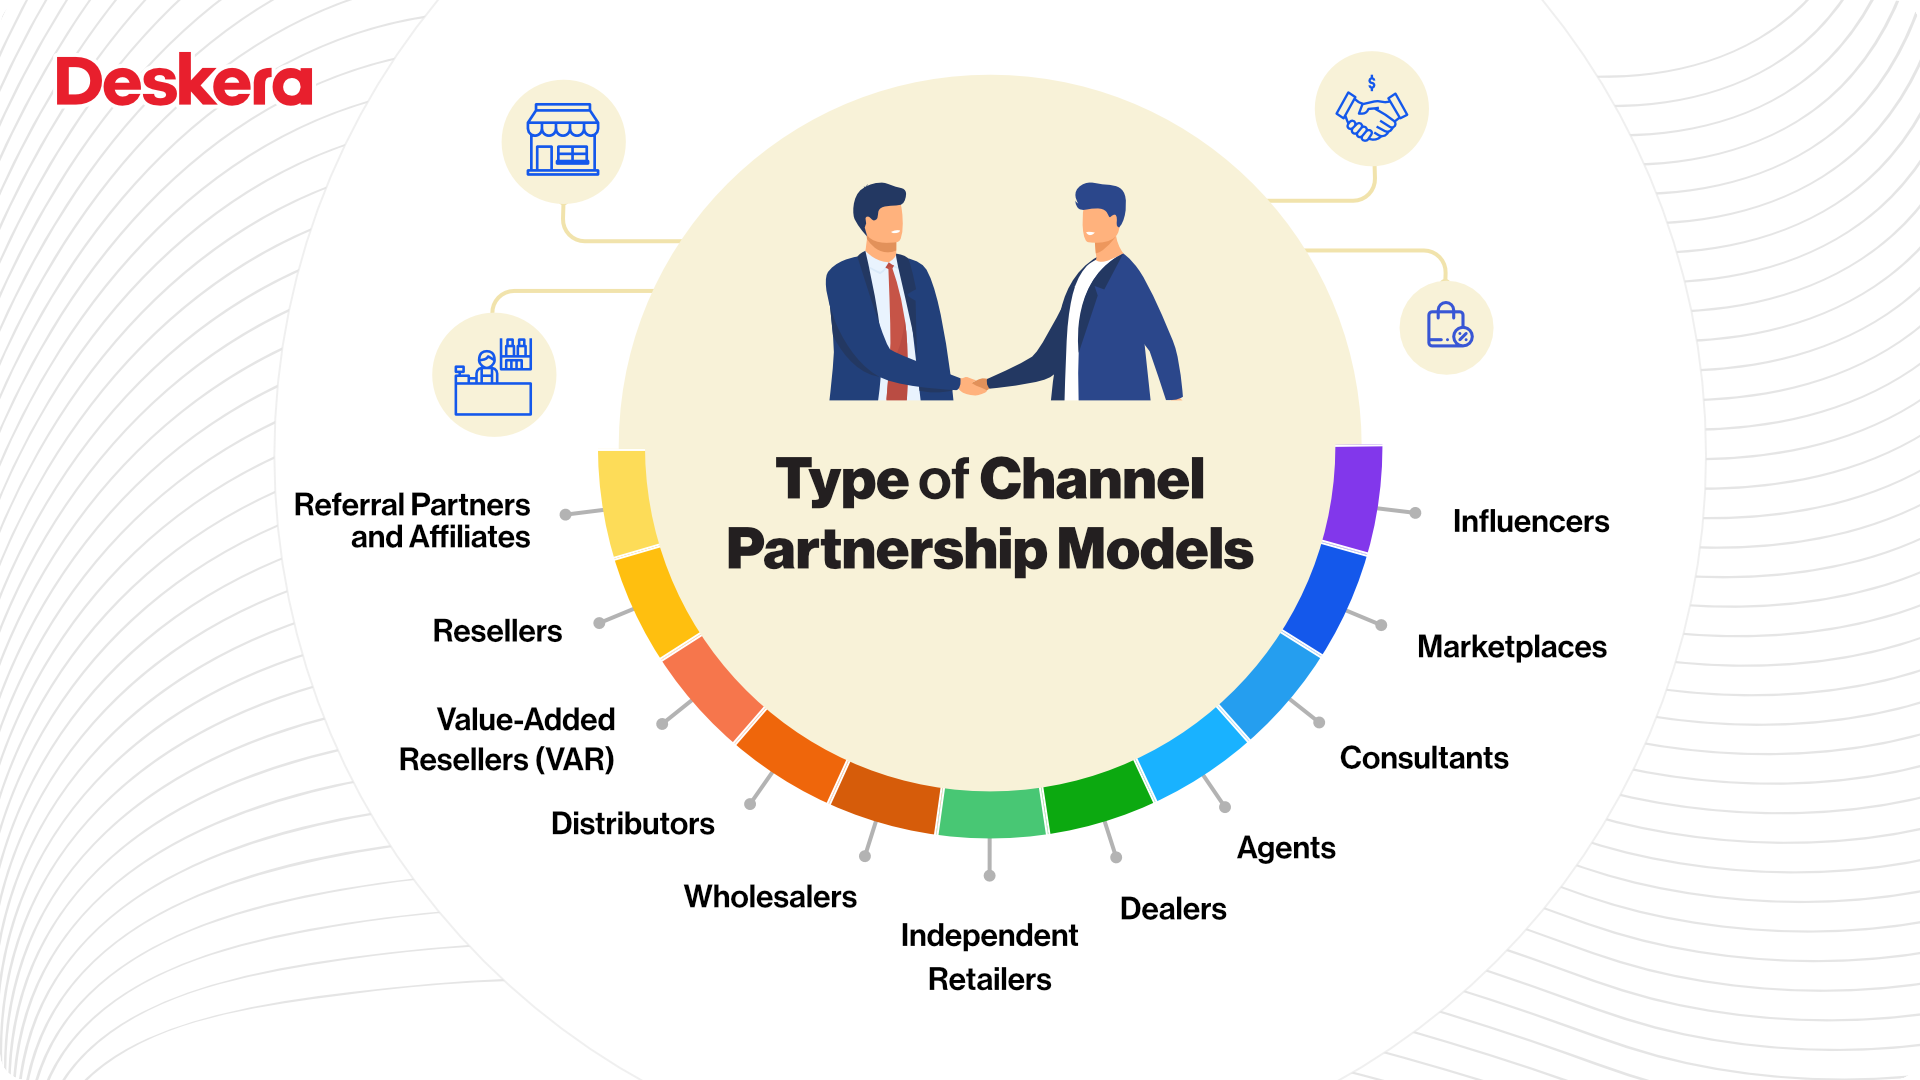 Types of Channel Partnership Models